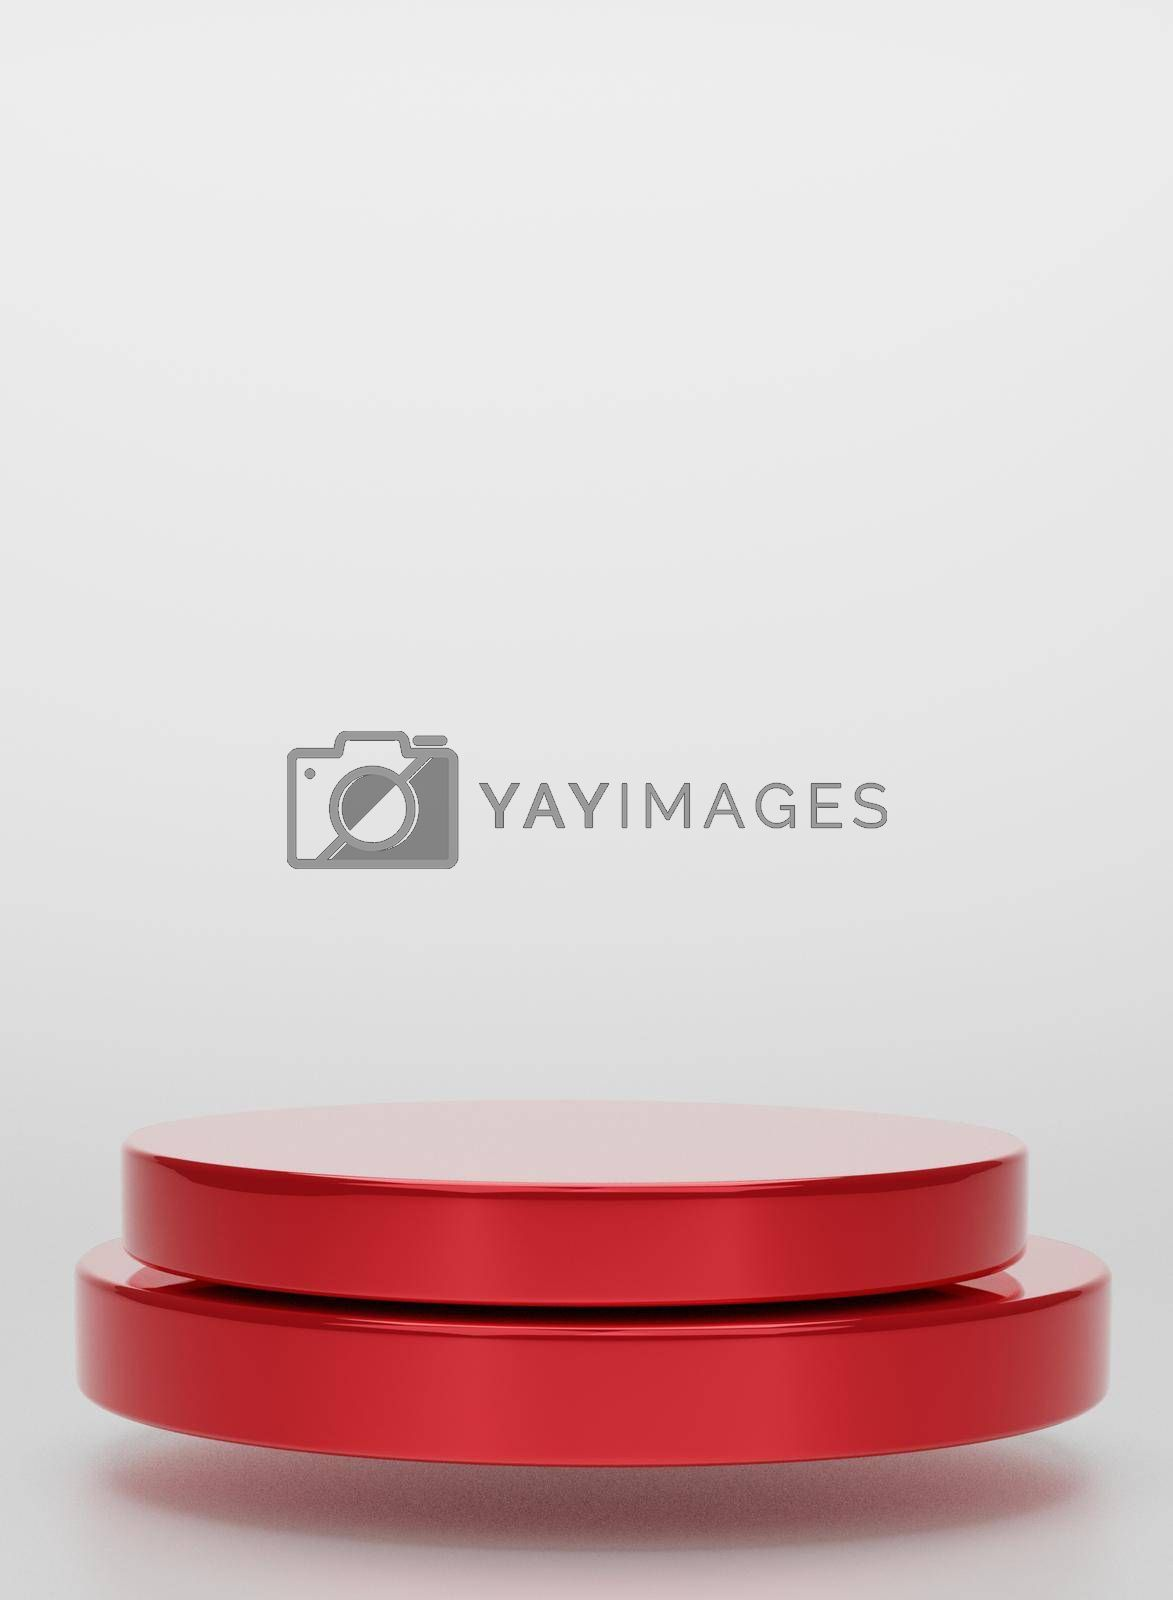 Red geometric circular background vertical image display podium prototype simple podium and commercial product concept white background 3d rendering.